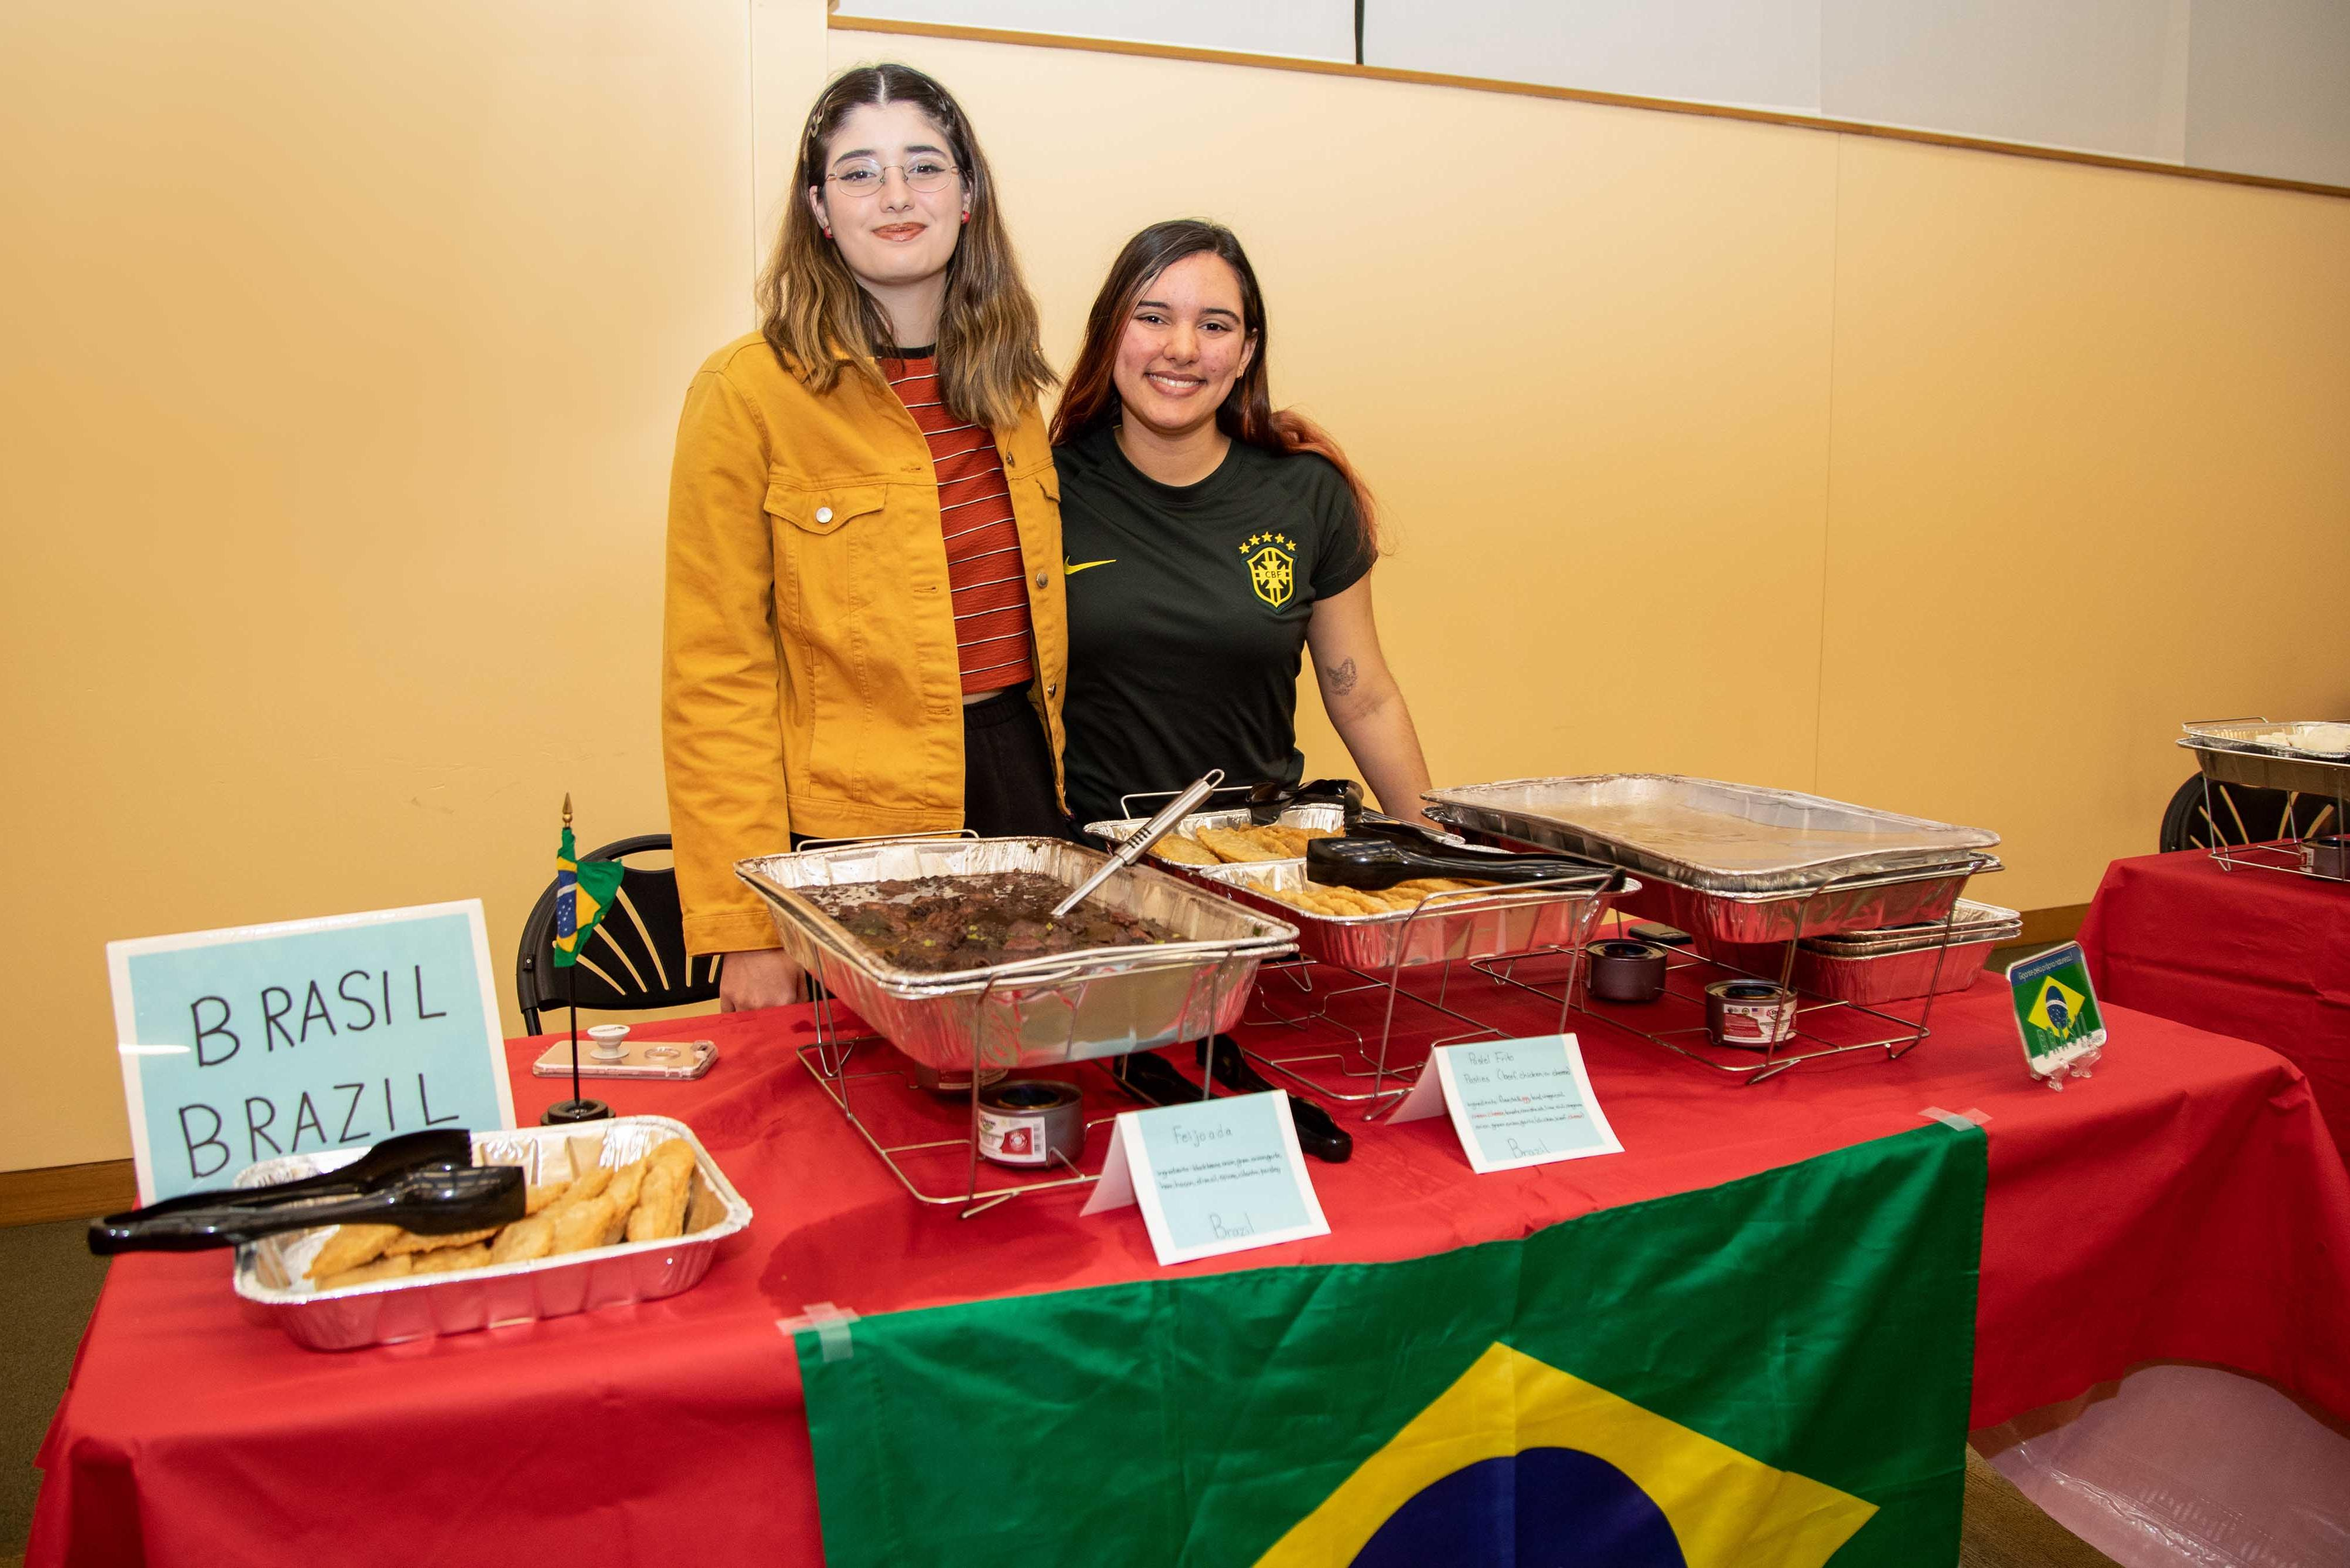 Two female students standing behind Brazil table at Celebrating Cultures event.